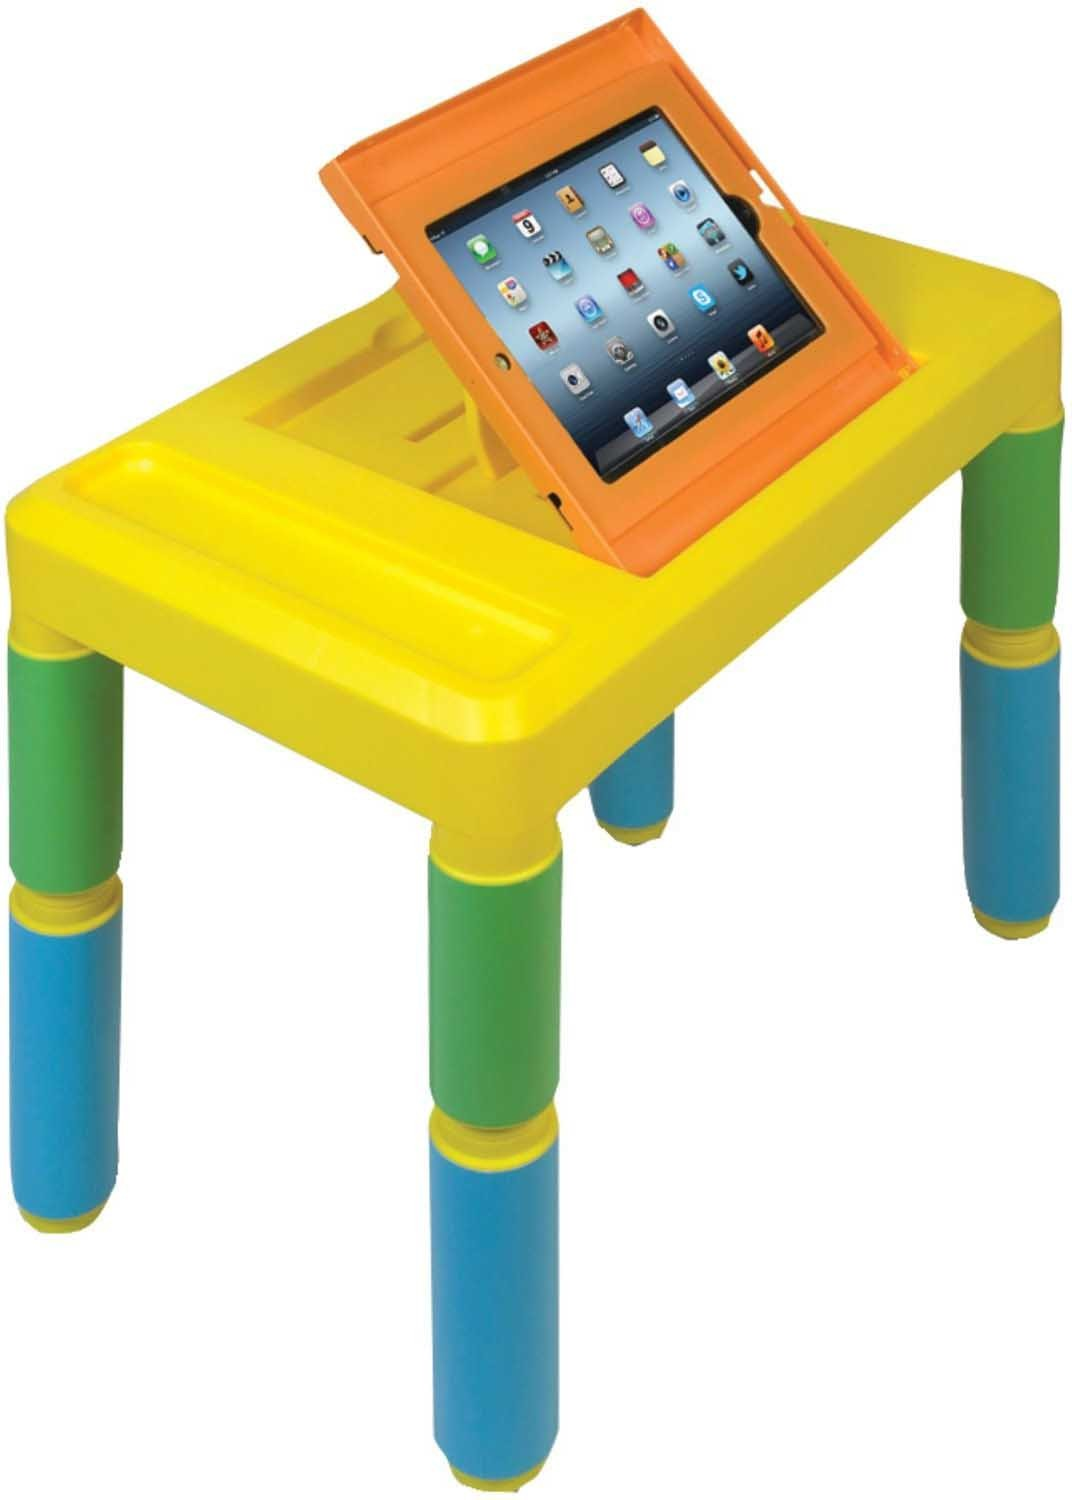 best ipad accessories for toddlers and preschoolers to help themdigital kids adjustable activity table